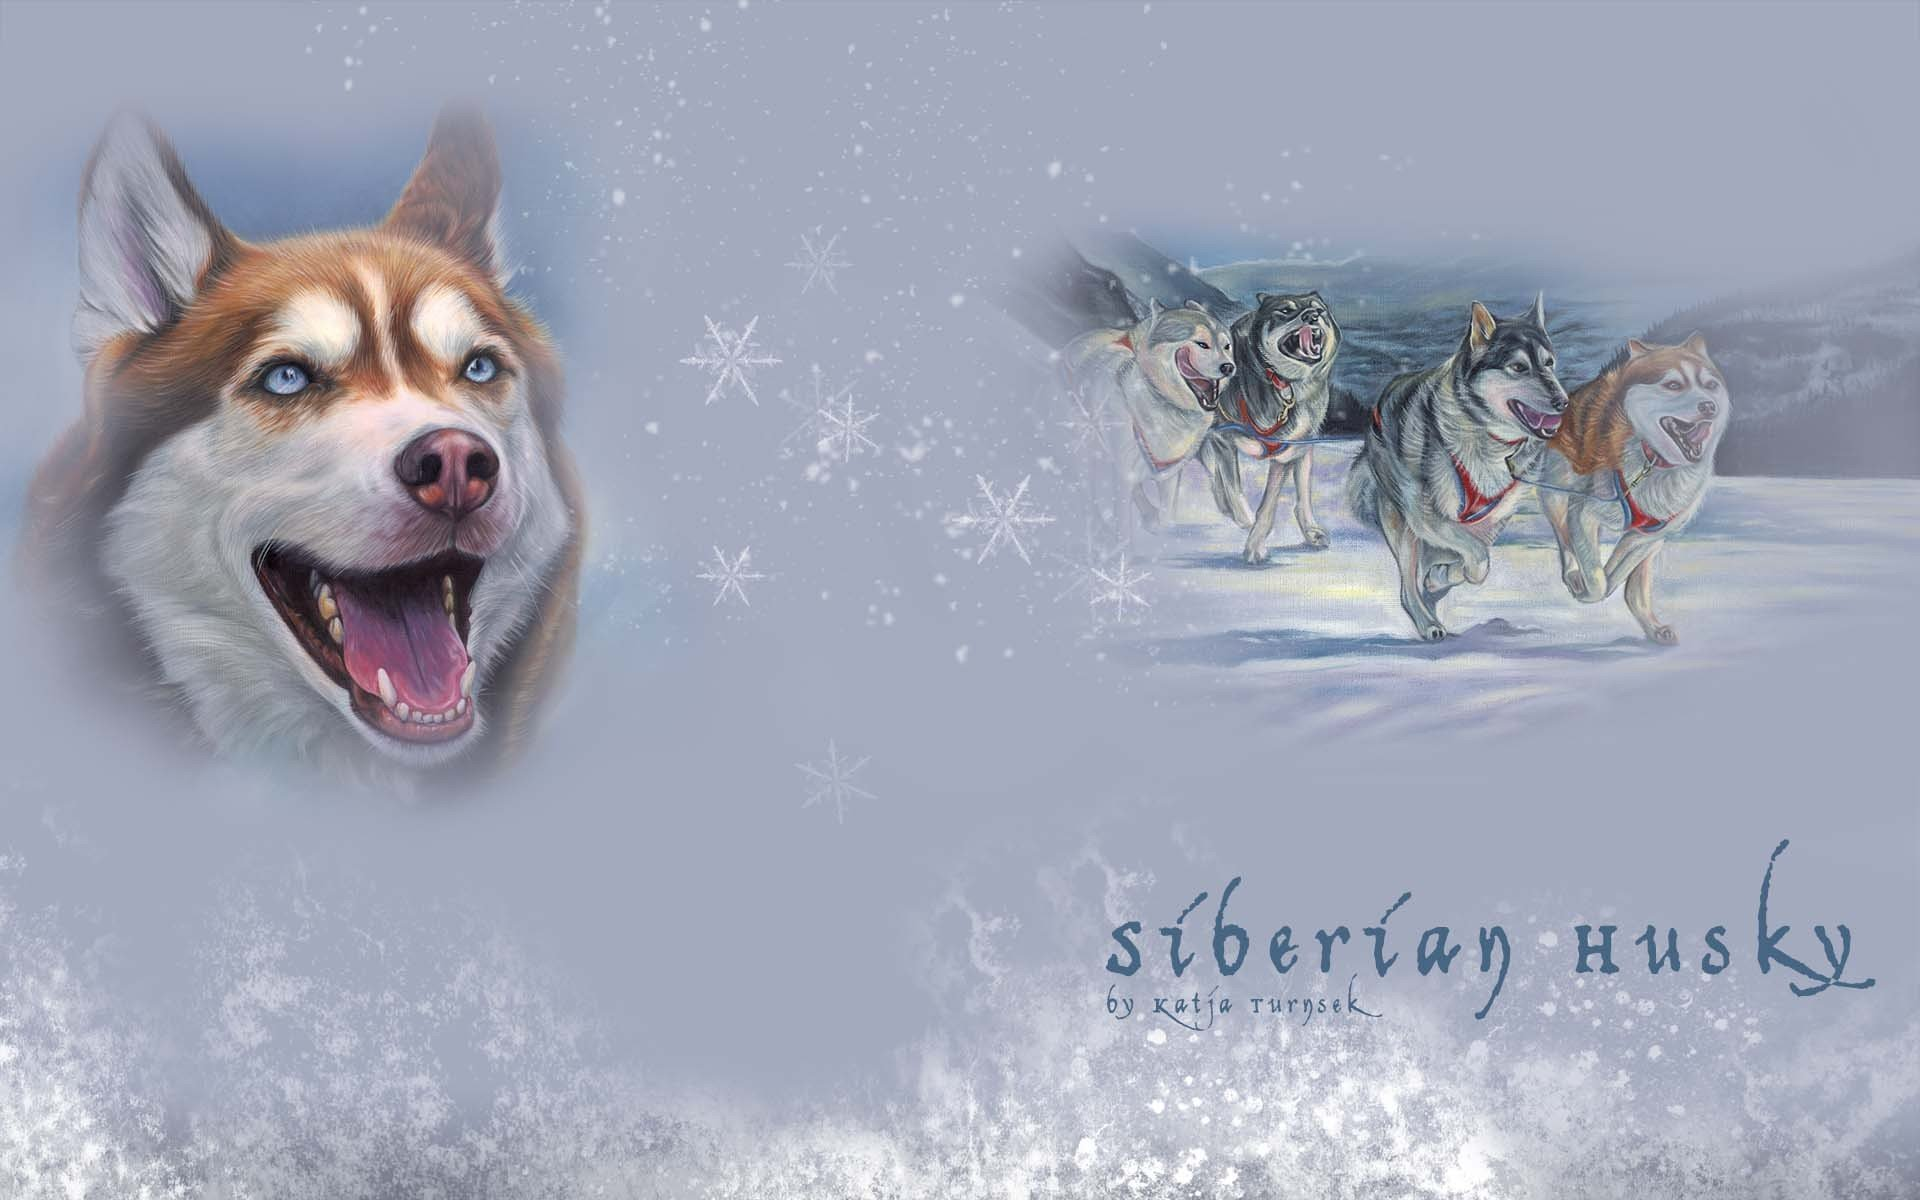 Download hd 1920x1200 Siberian Husky desktop wallpaper ID:155231 for free